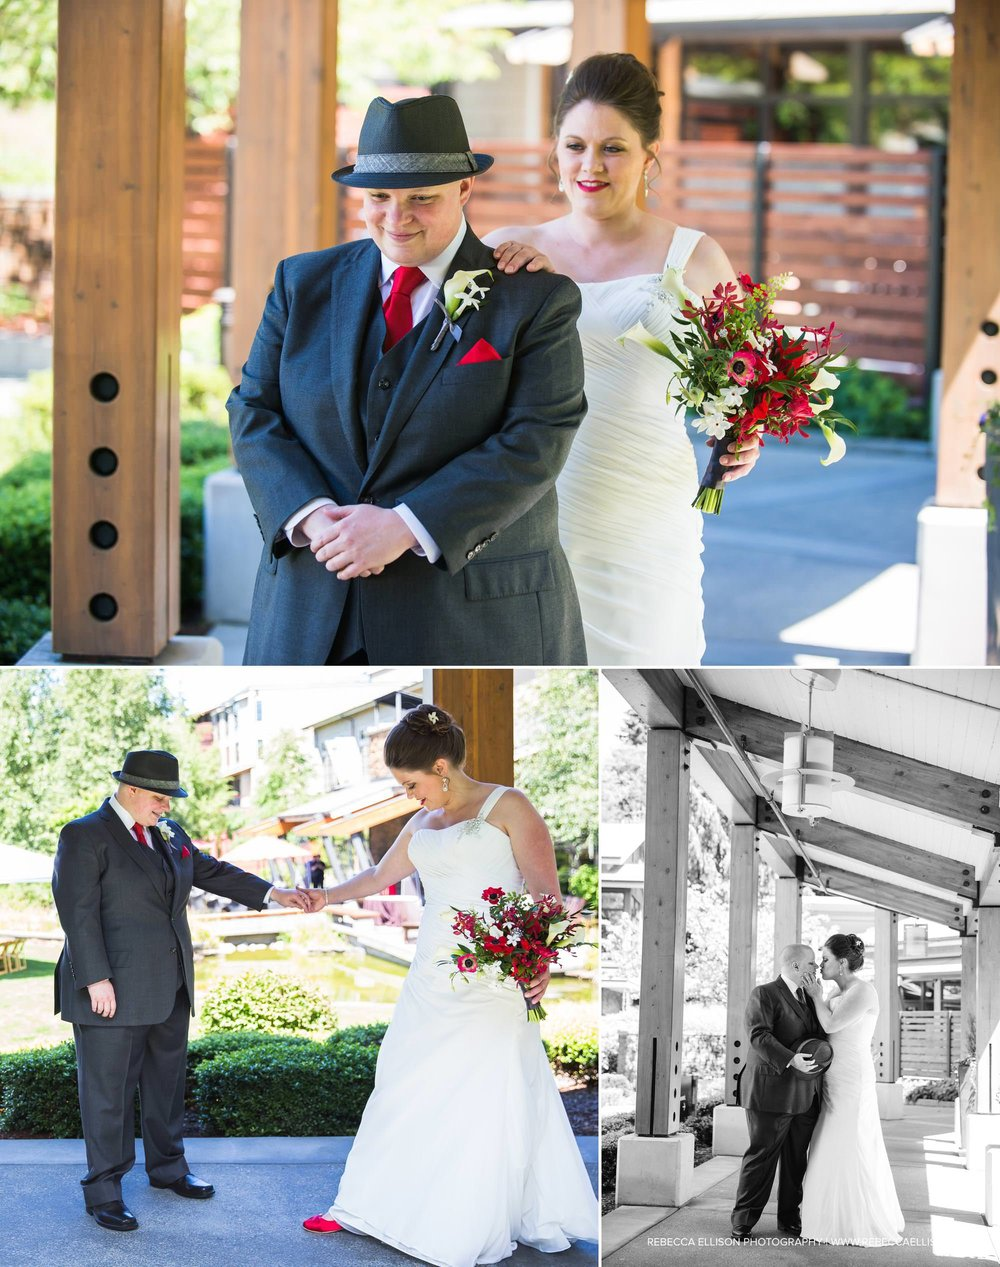 Same-sex-summer-wedding 7web.jpg